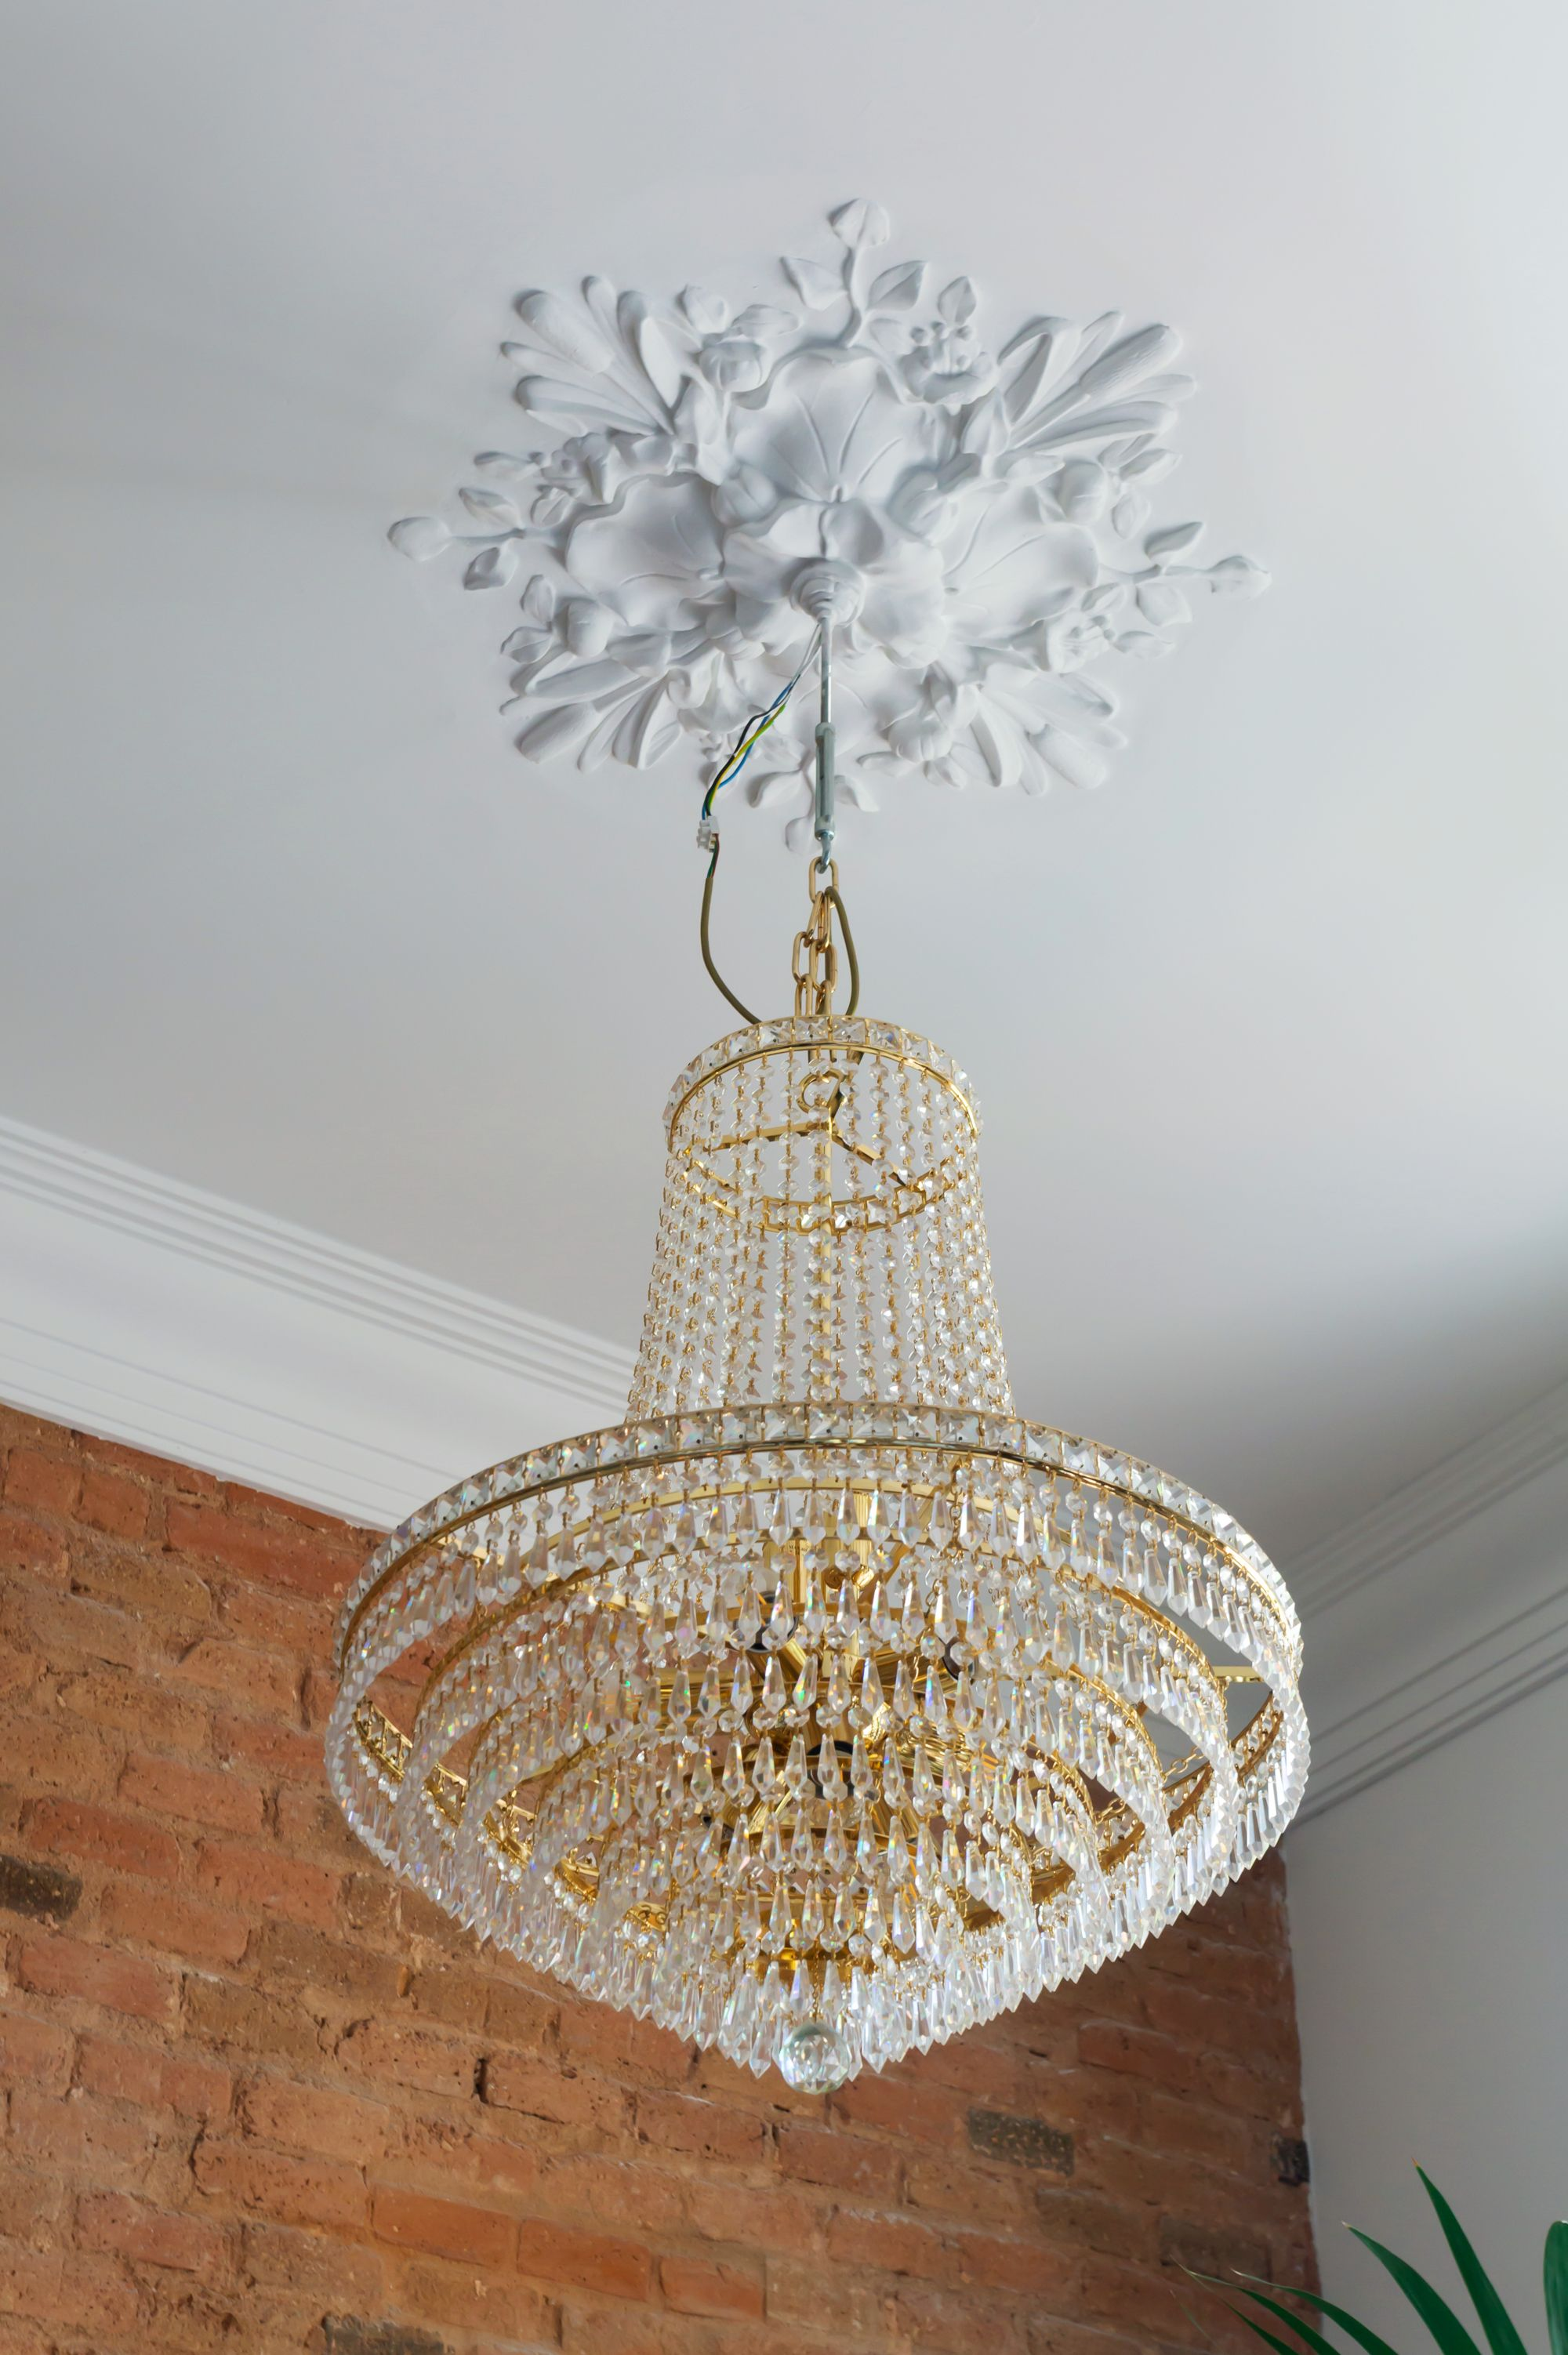 Gemma Barcelona Home Tour chandelier with floral molding